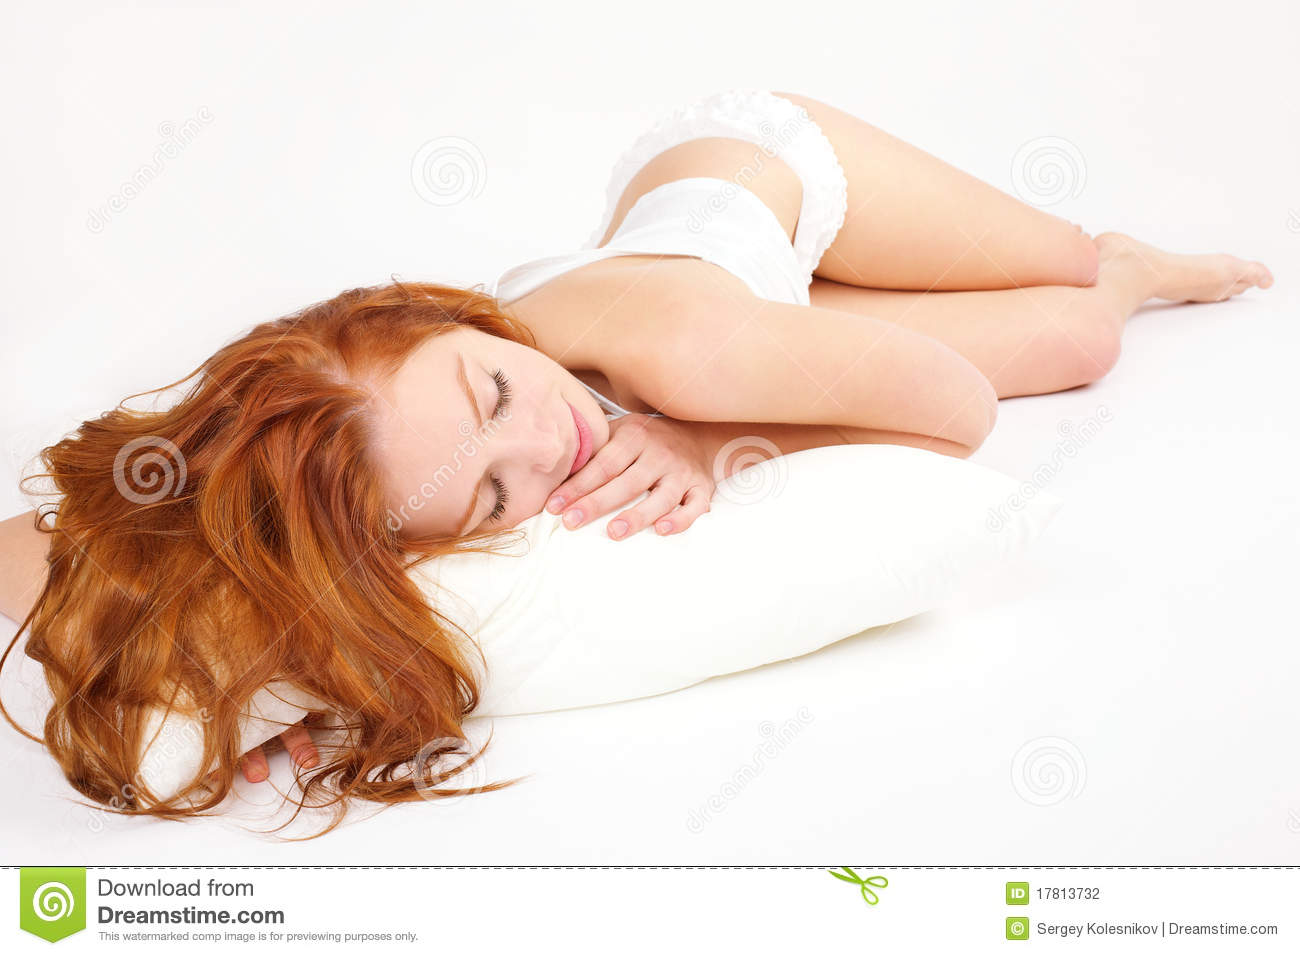 For sleeping redhead pics well, not